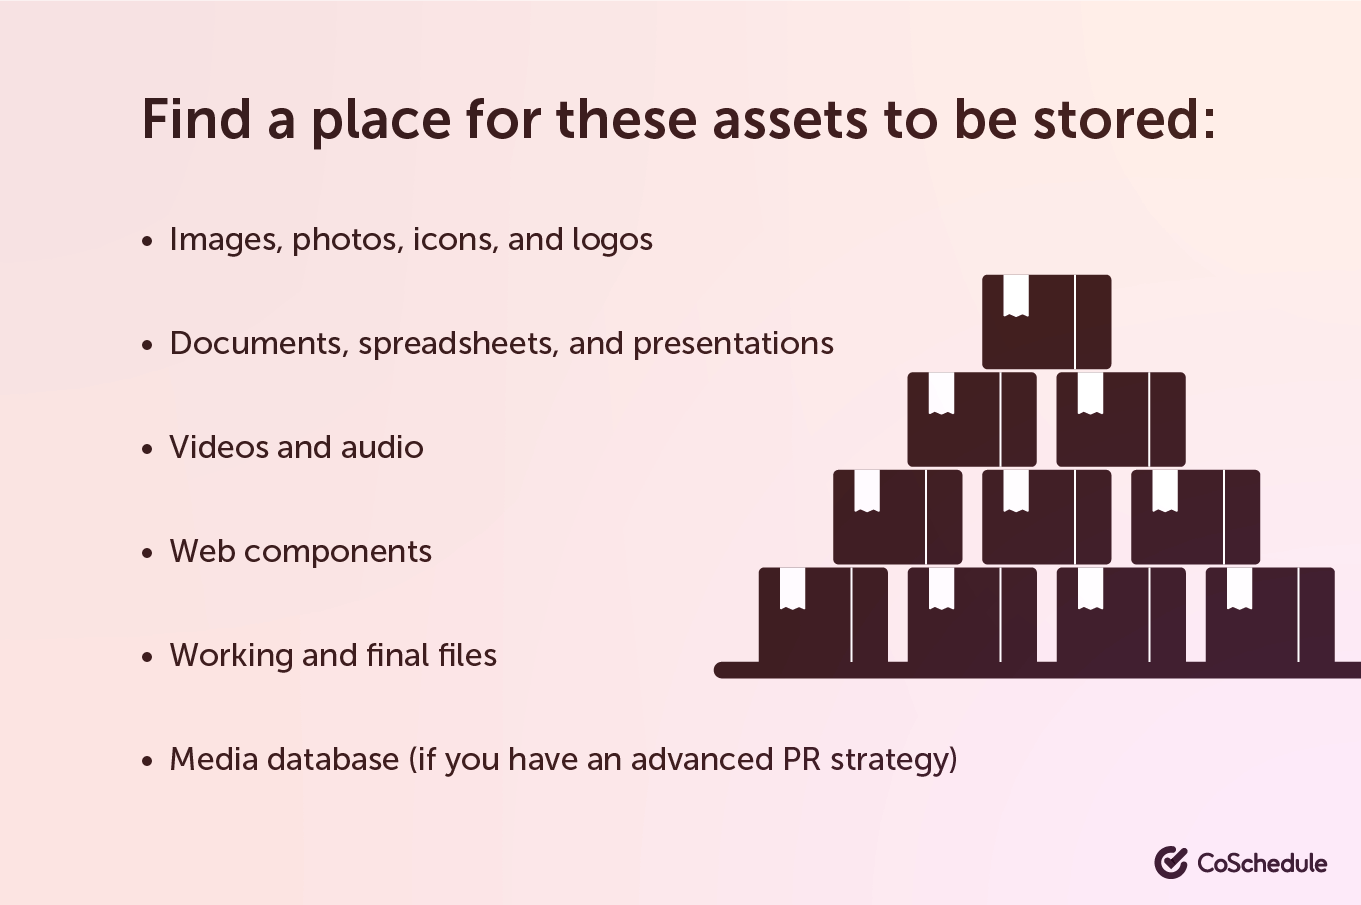 Find a place to store your assets